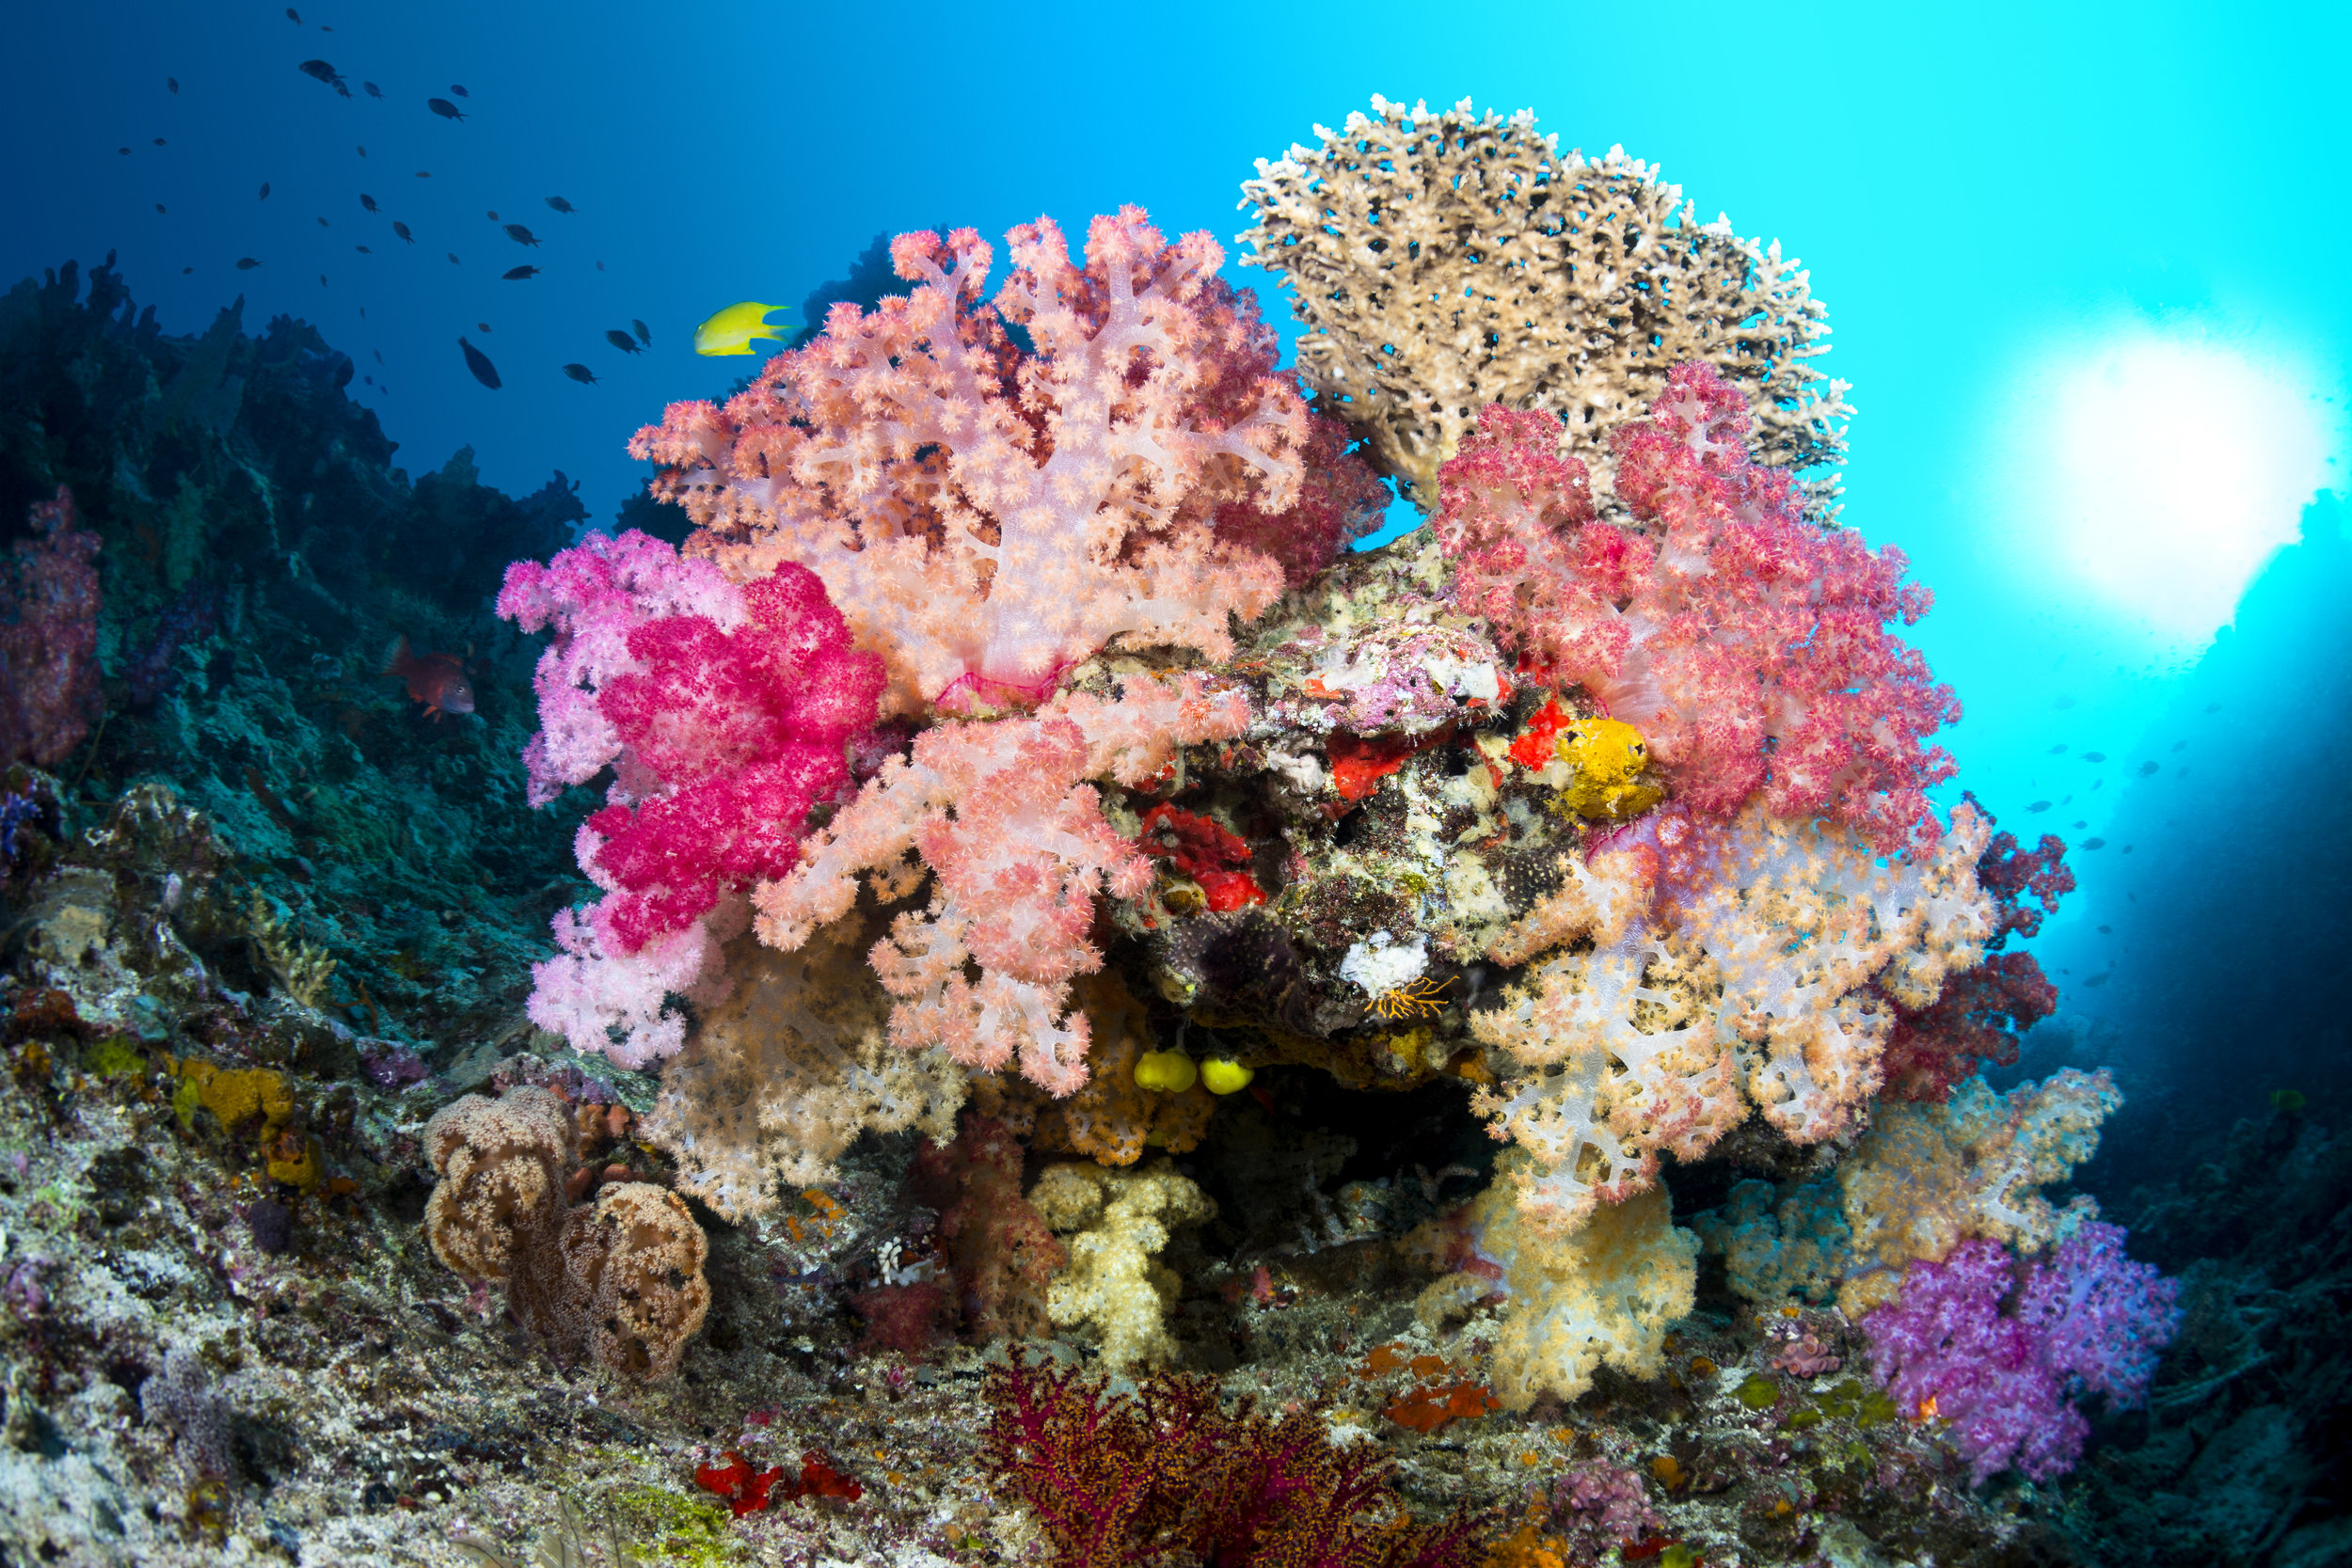 vibrant-coral-reef-PFVUTWT.jpg